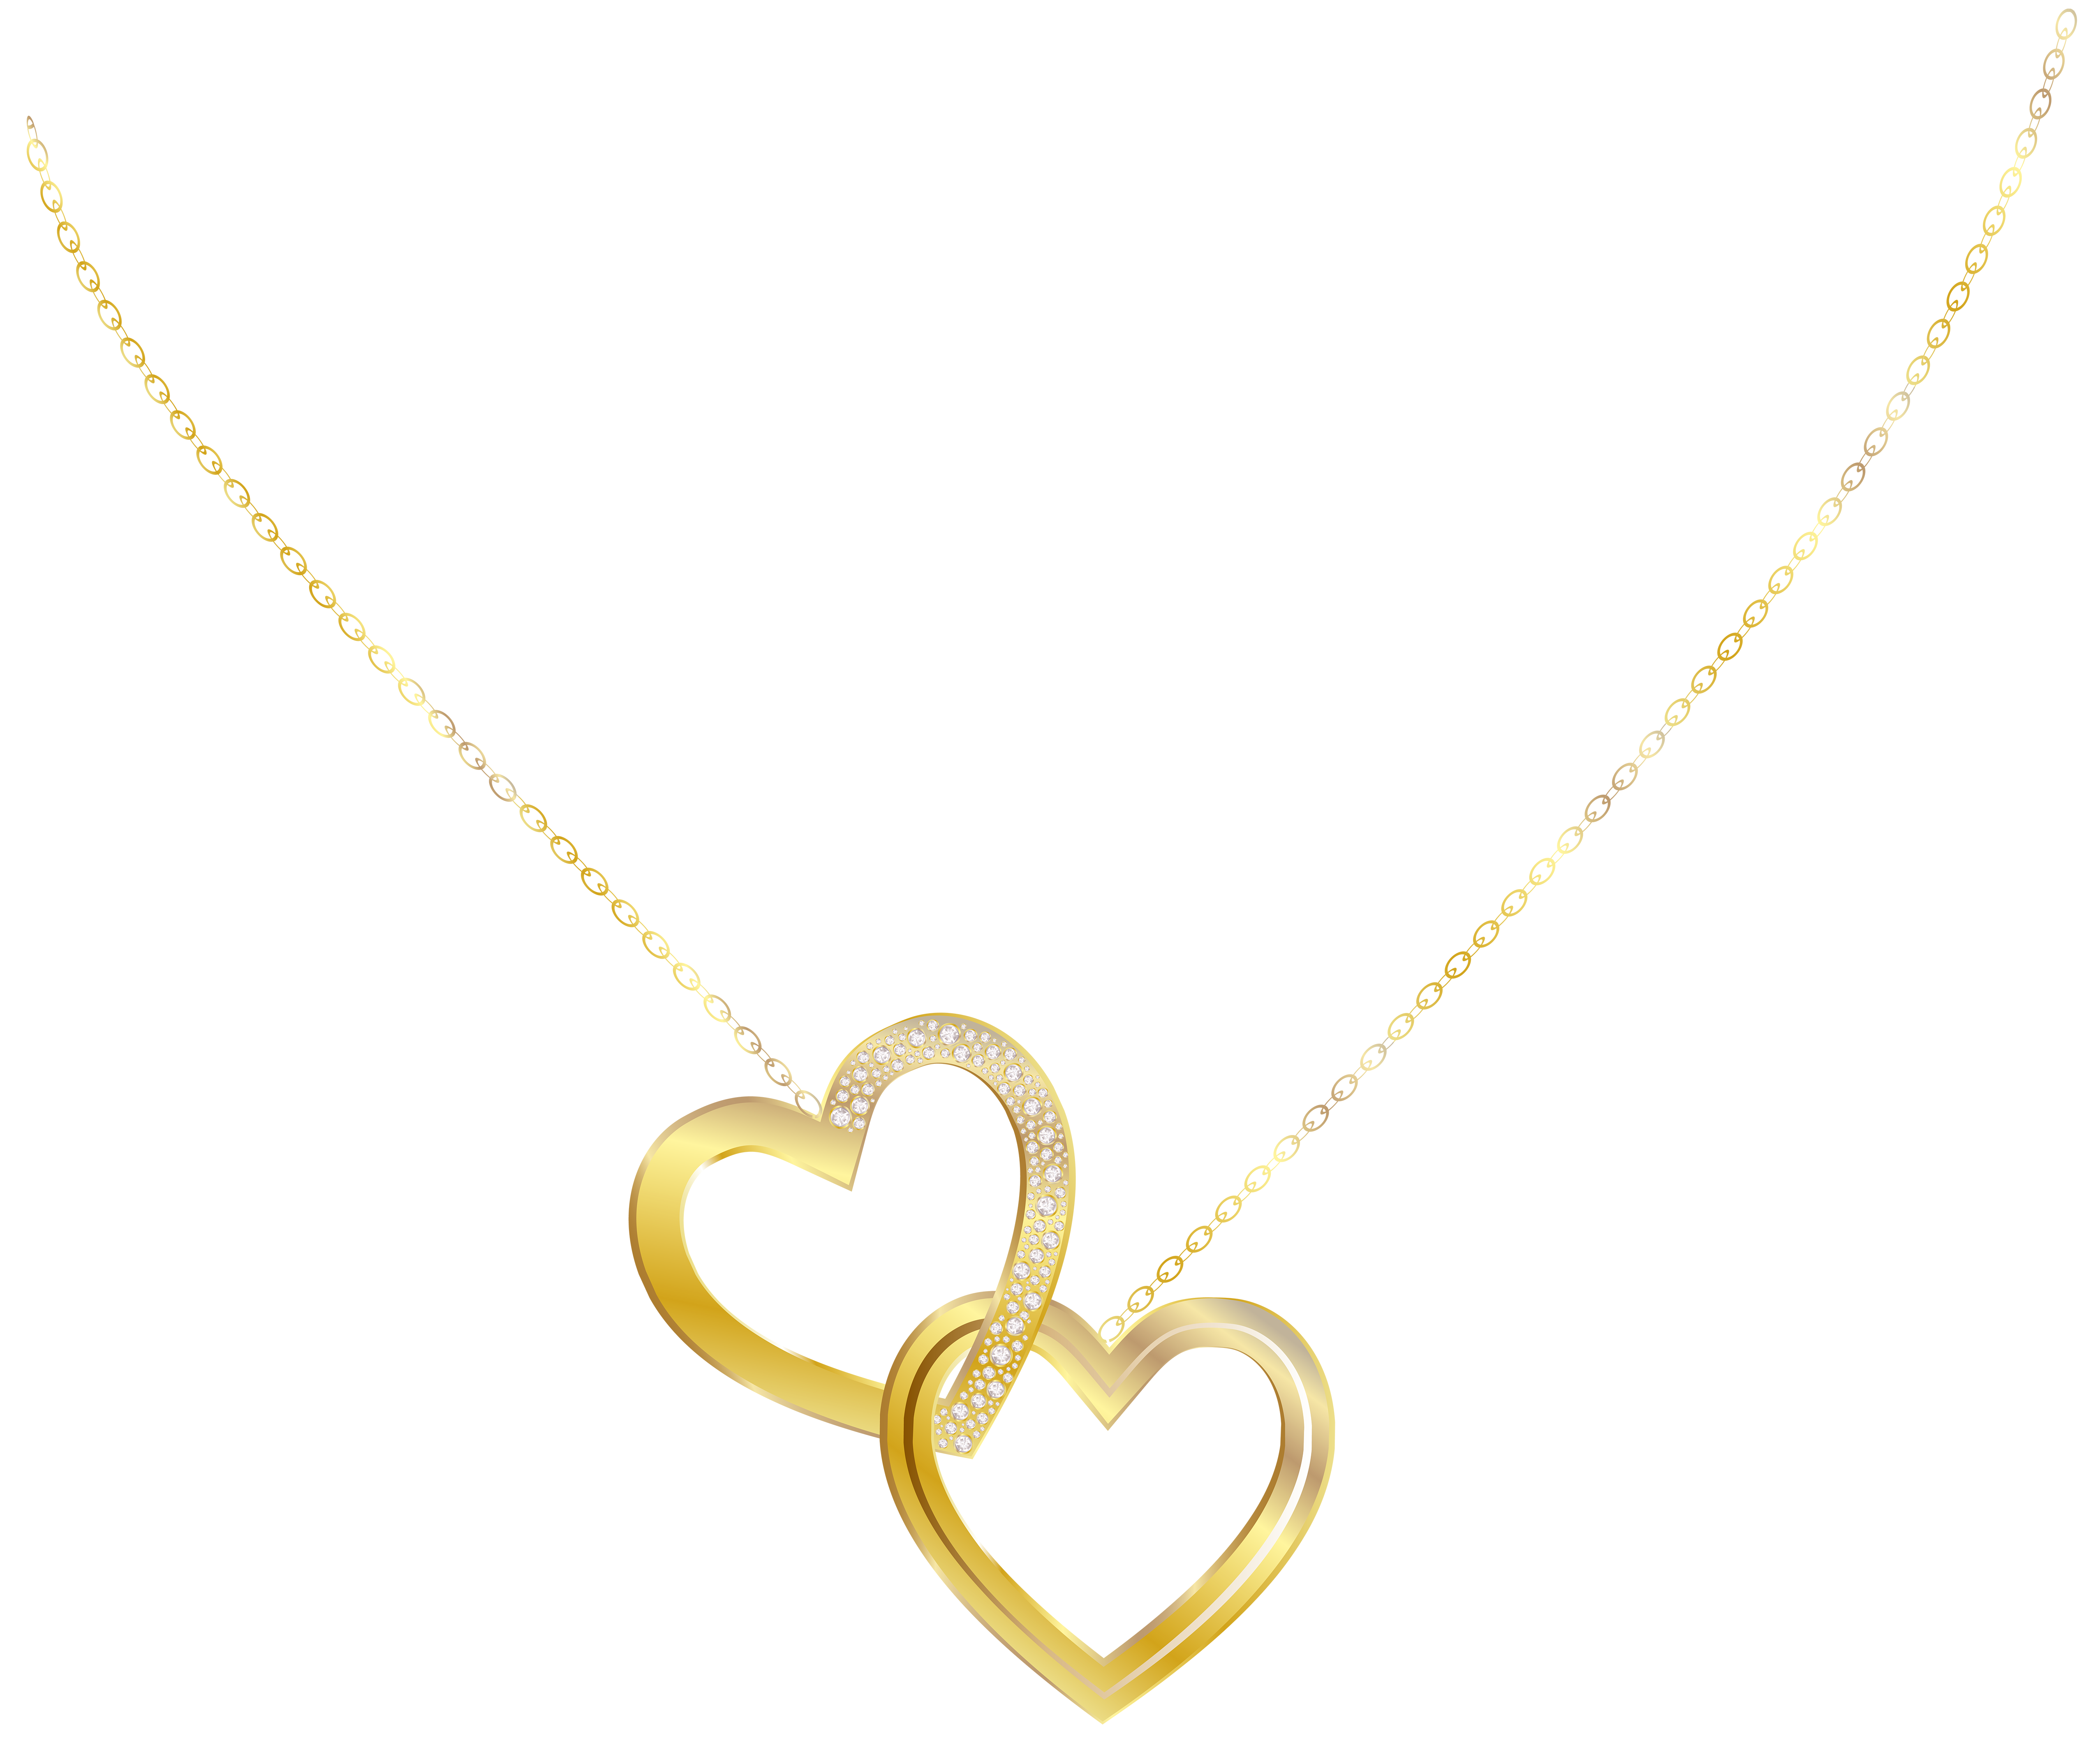 Gold Heart Necklace PNG Clip Art Image.